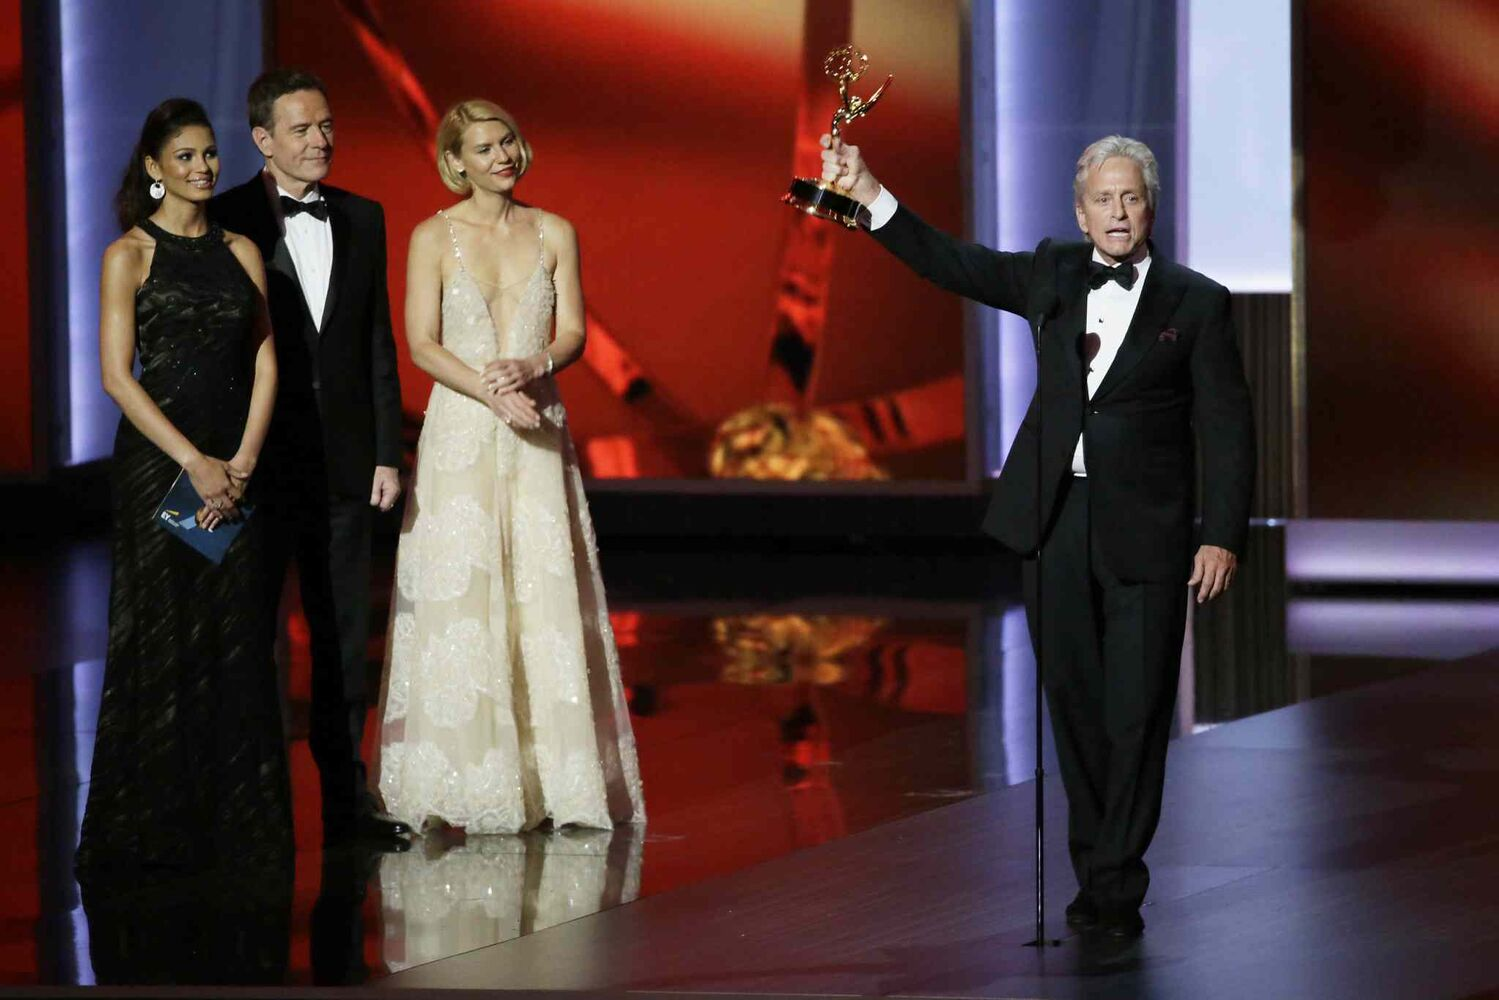 Michael Douglas accepts his Emmy for Outstanding Lead Actor in a Miniseries or Movie at the 65th Annual Primetime Emmy Awards on Sunday.